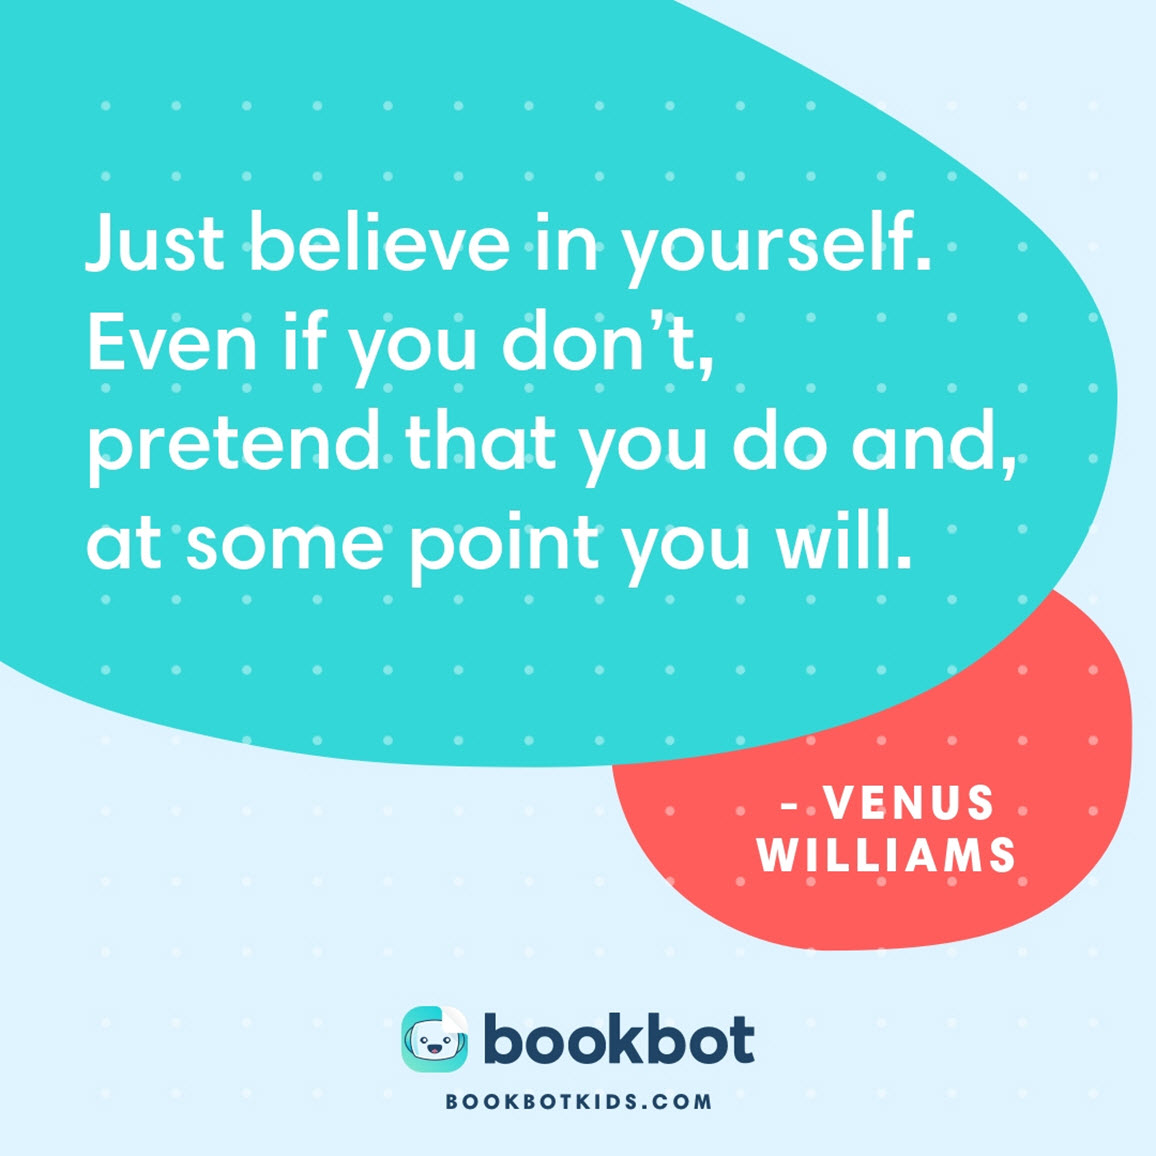 Just believe in yourself. Even if you don't, pretend that you do and, at some point you will. – Venus Williams